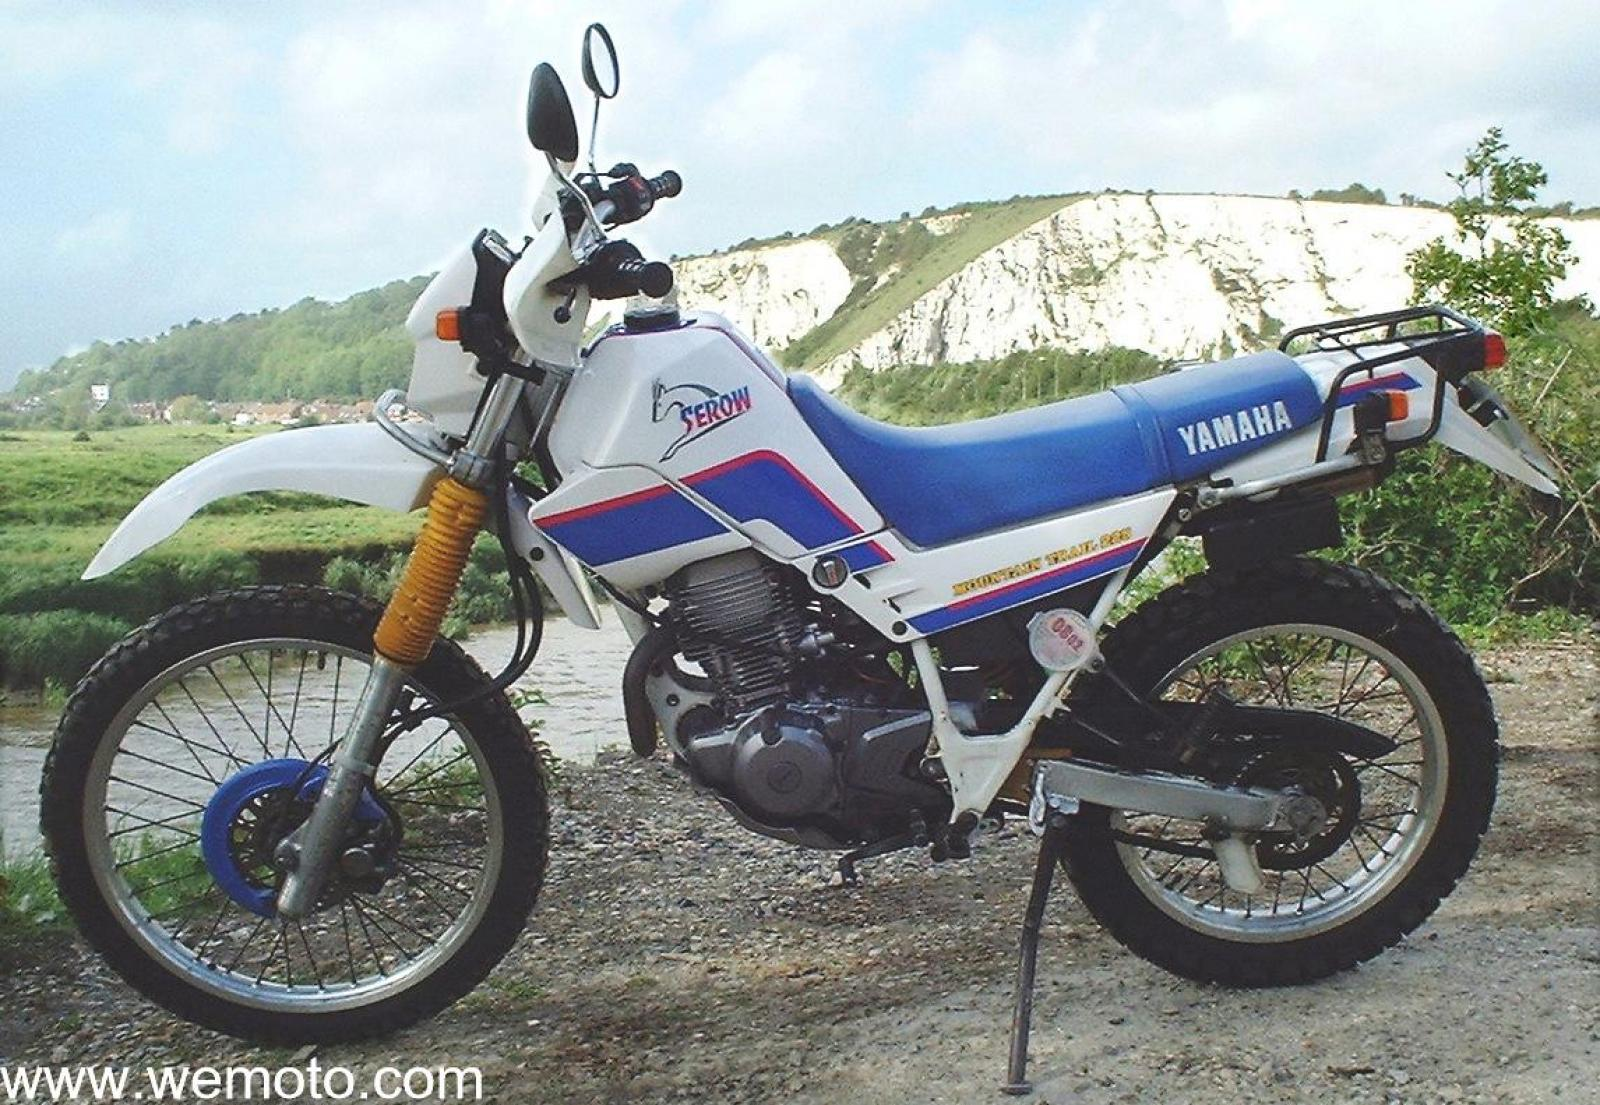 Yamaha 225 photo - 3